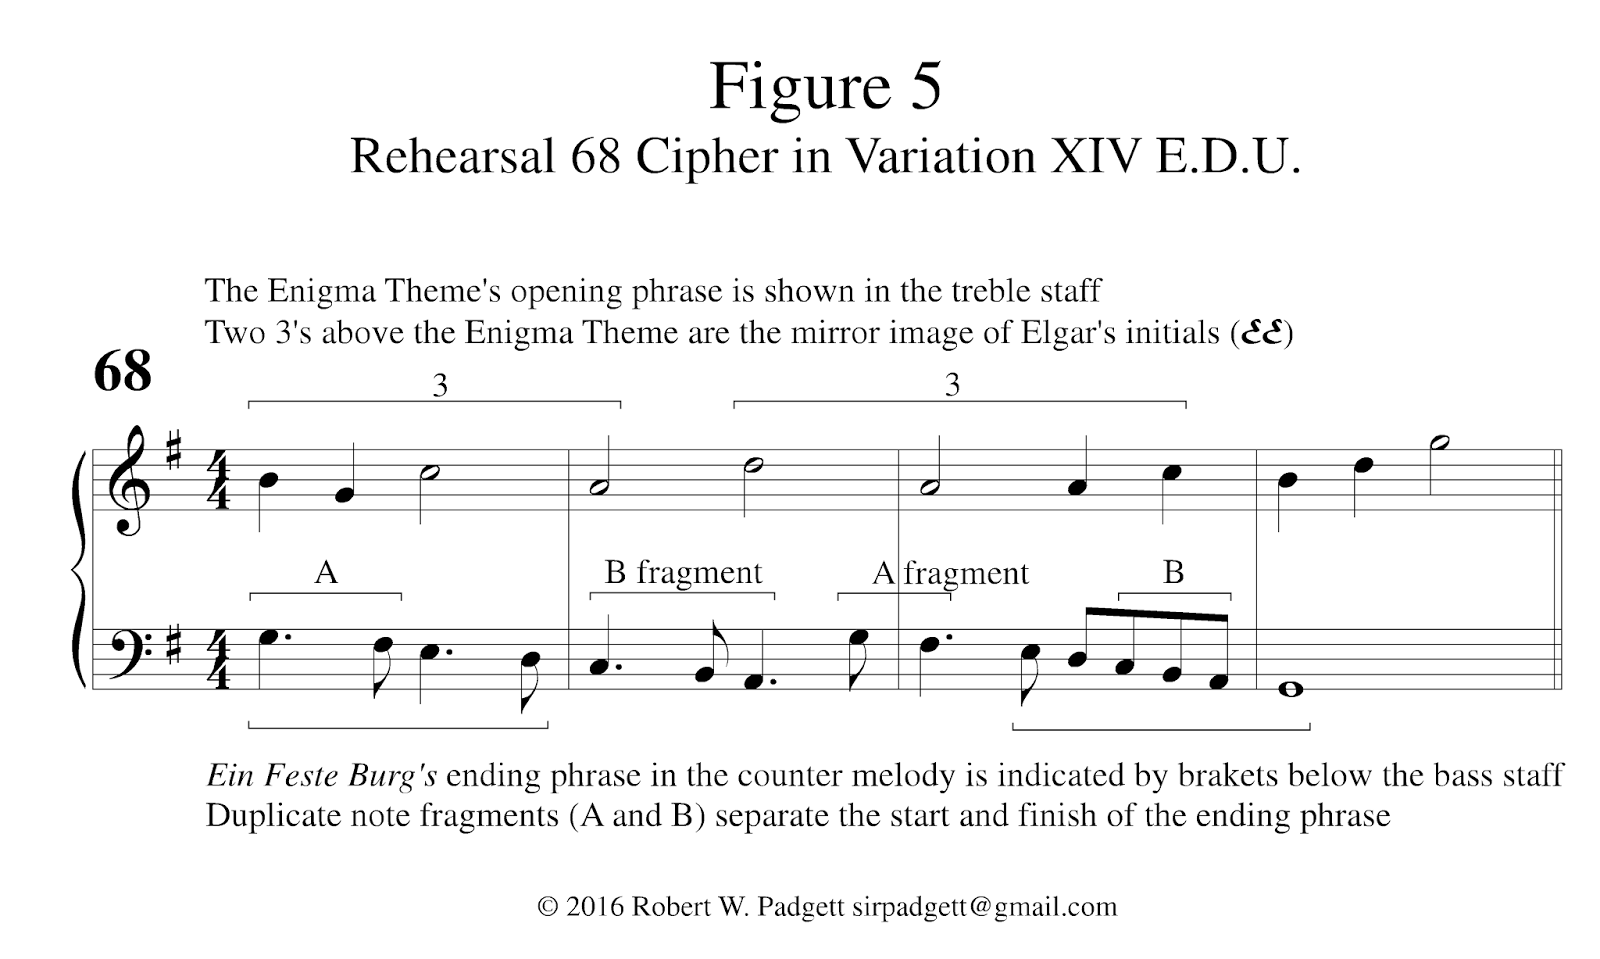 Gmail theme music - Certain Features Of The Enigma Theme Also Hint At A Retrograde Counterpoint First The Opening Six Notes Of The Cello Line Are The Last Six Notes Of Ein